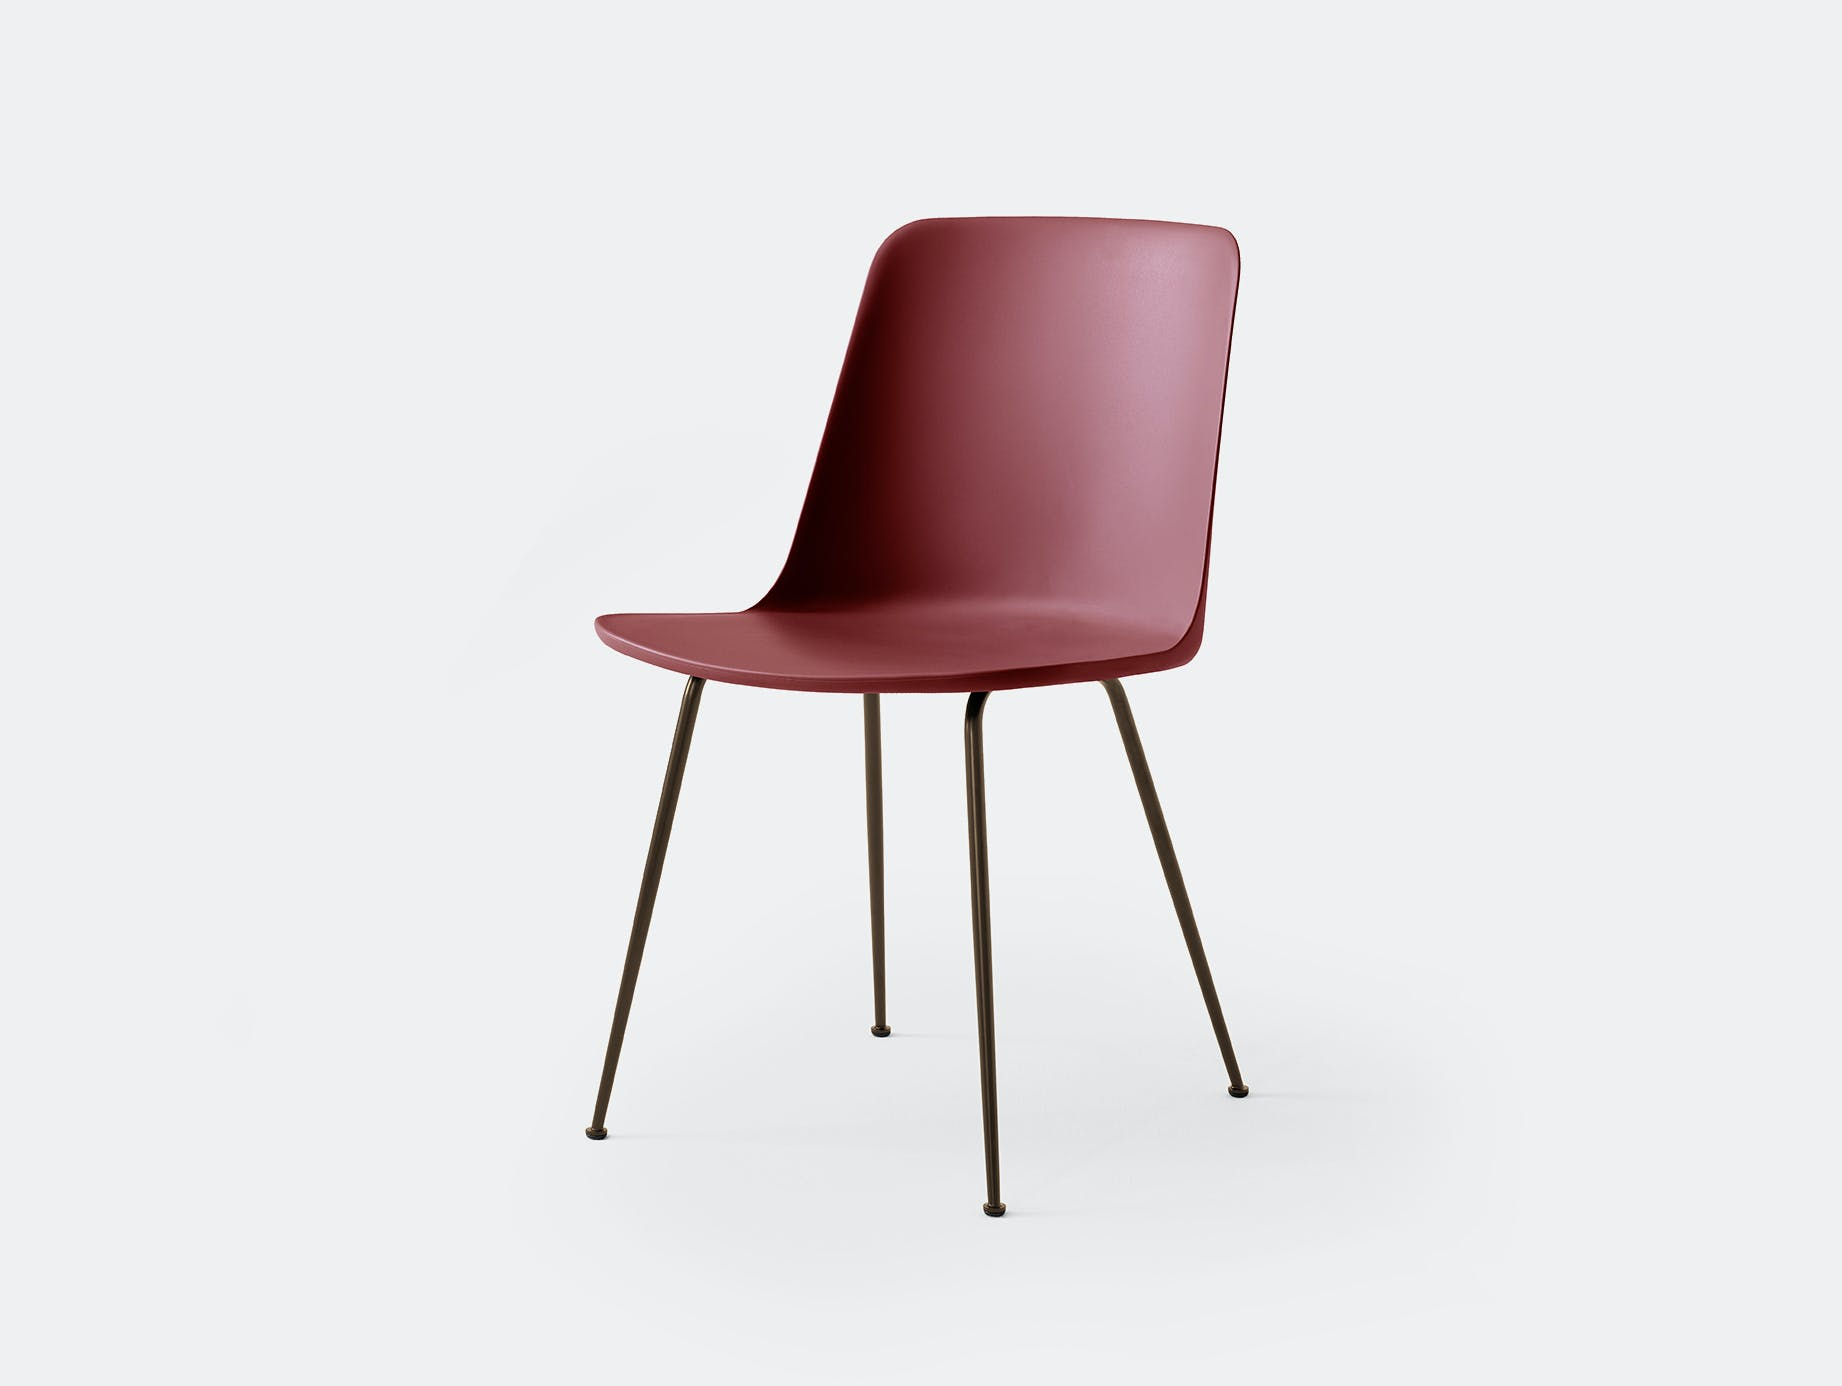 Andtradition rely chair four leg brz redbrown